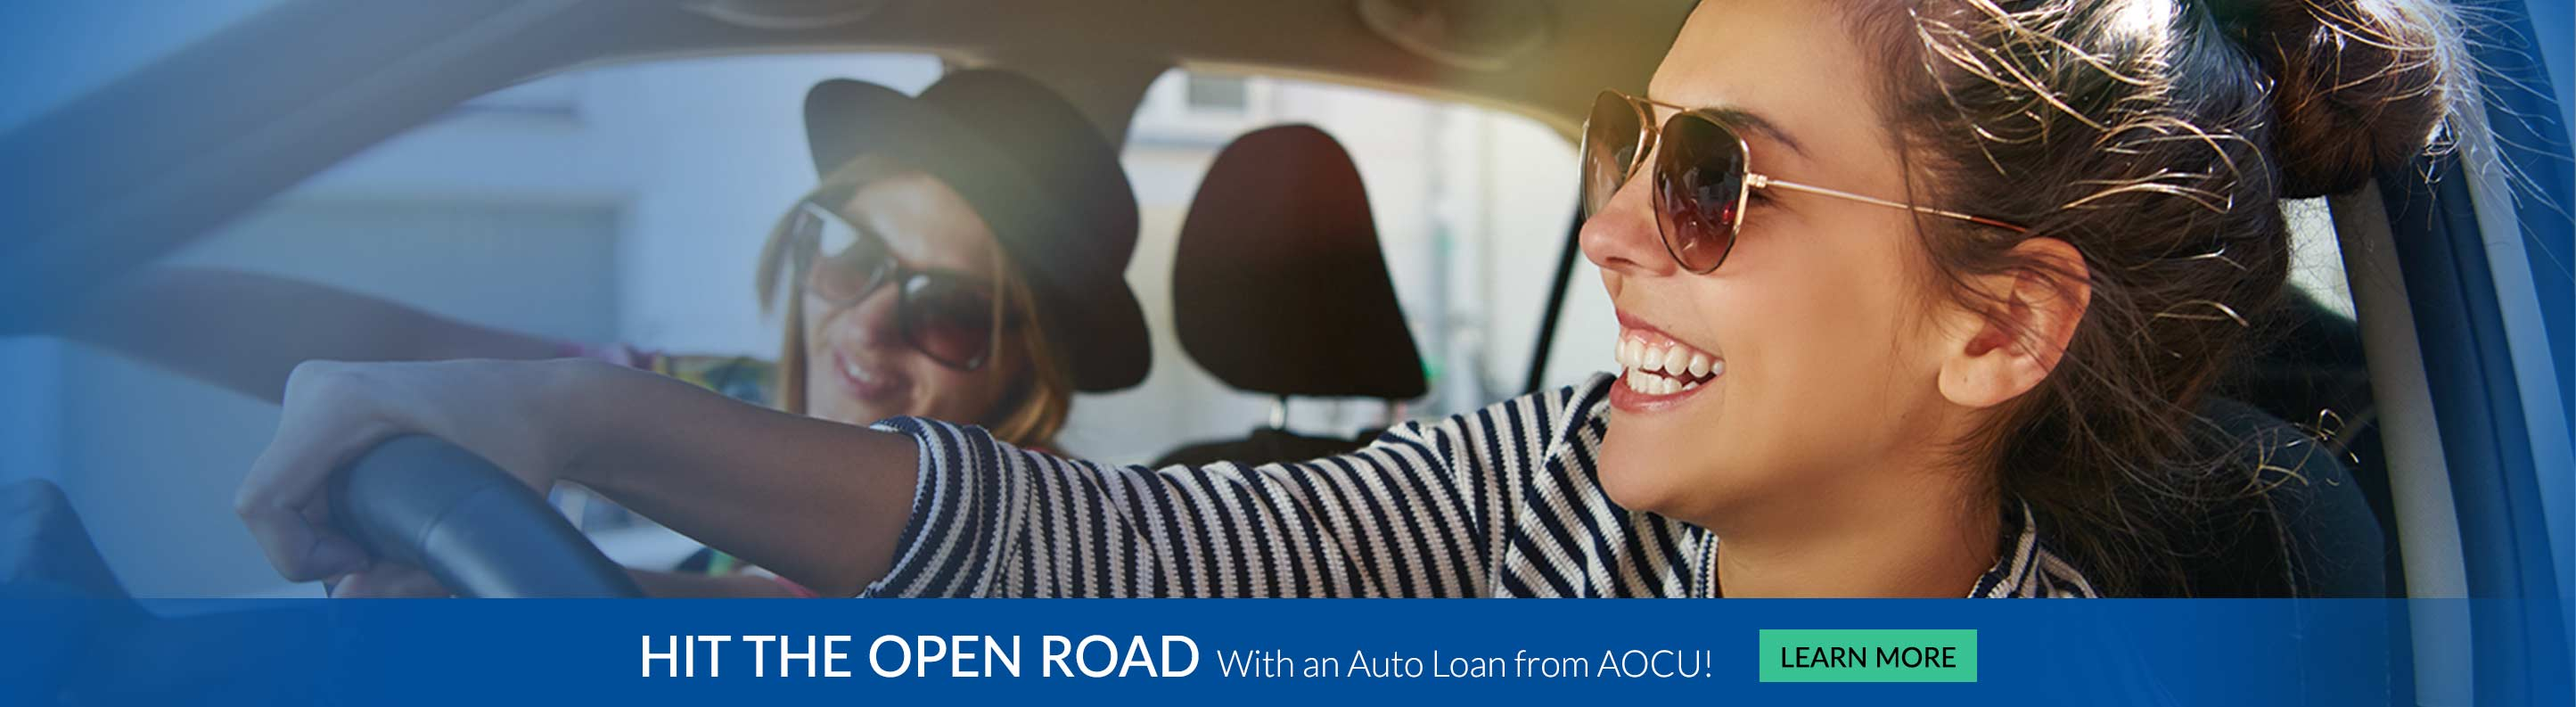 Hit the open road with an auto loan from AOCU Learn More